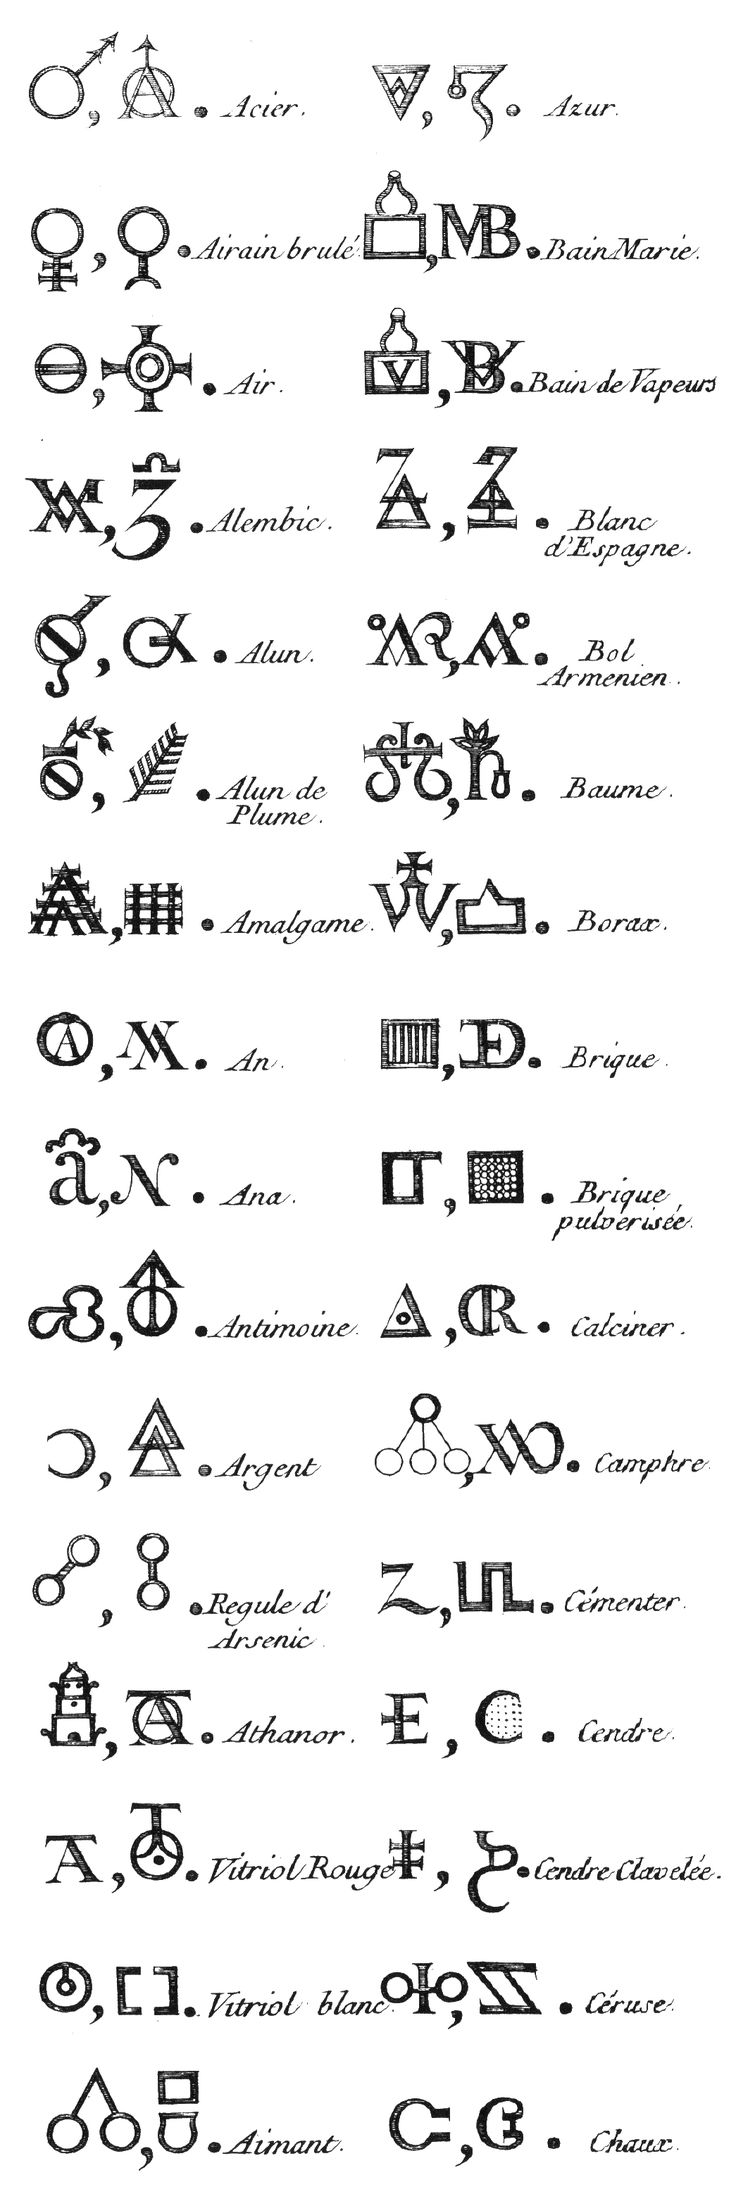 Alphabet alfabet a z armenian beauty heritage armenian tattoos - Diderot And D Alembert Alchemical Symbols